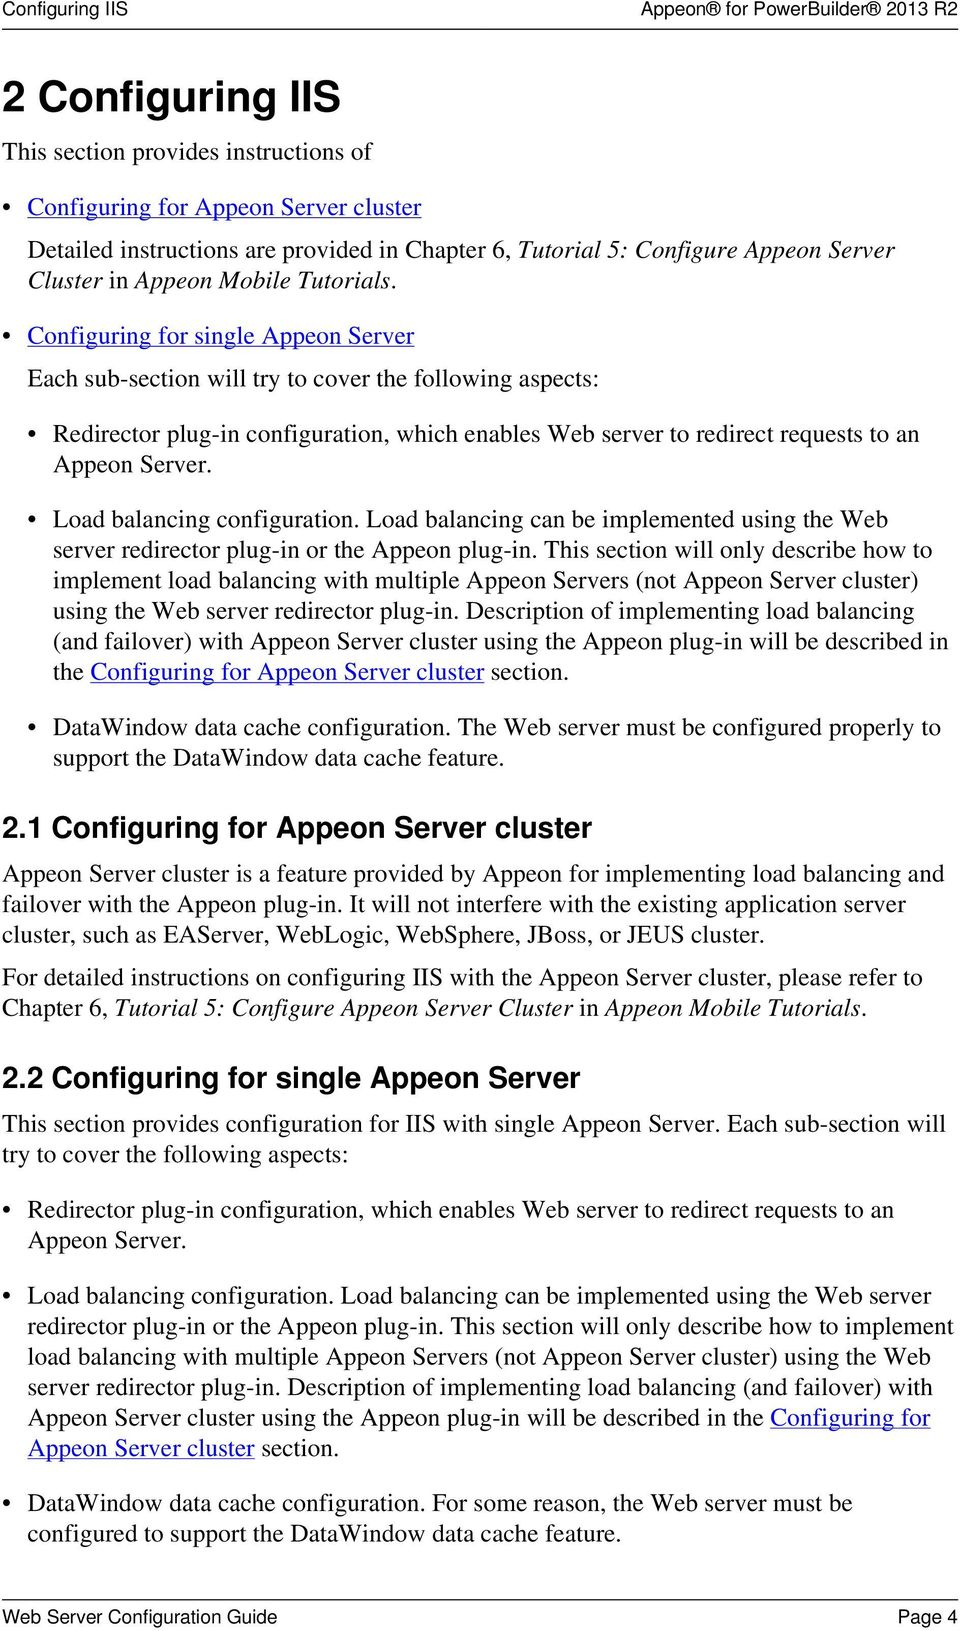 Configuring for single Appeon Server Each sub-section will try to cover the following aspects: Redirector plug-in configuration, which enables Web server to redirect requests to an Appeon Server.